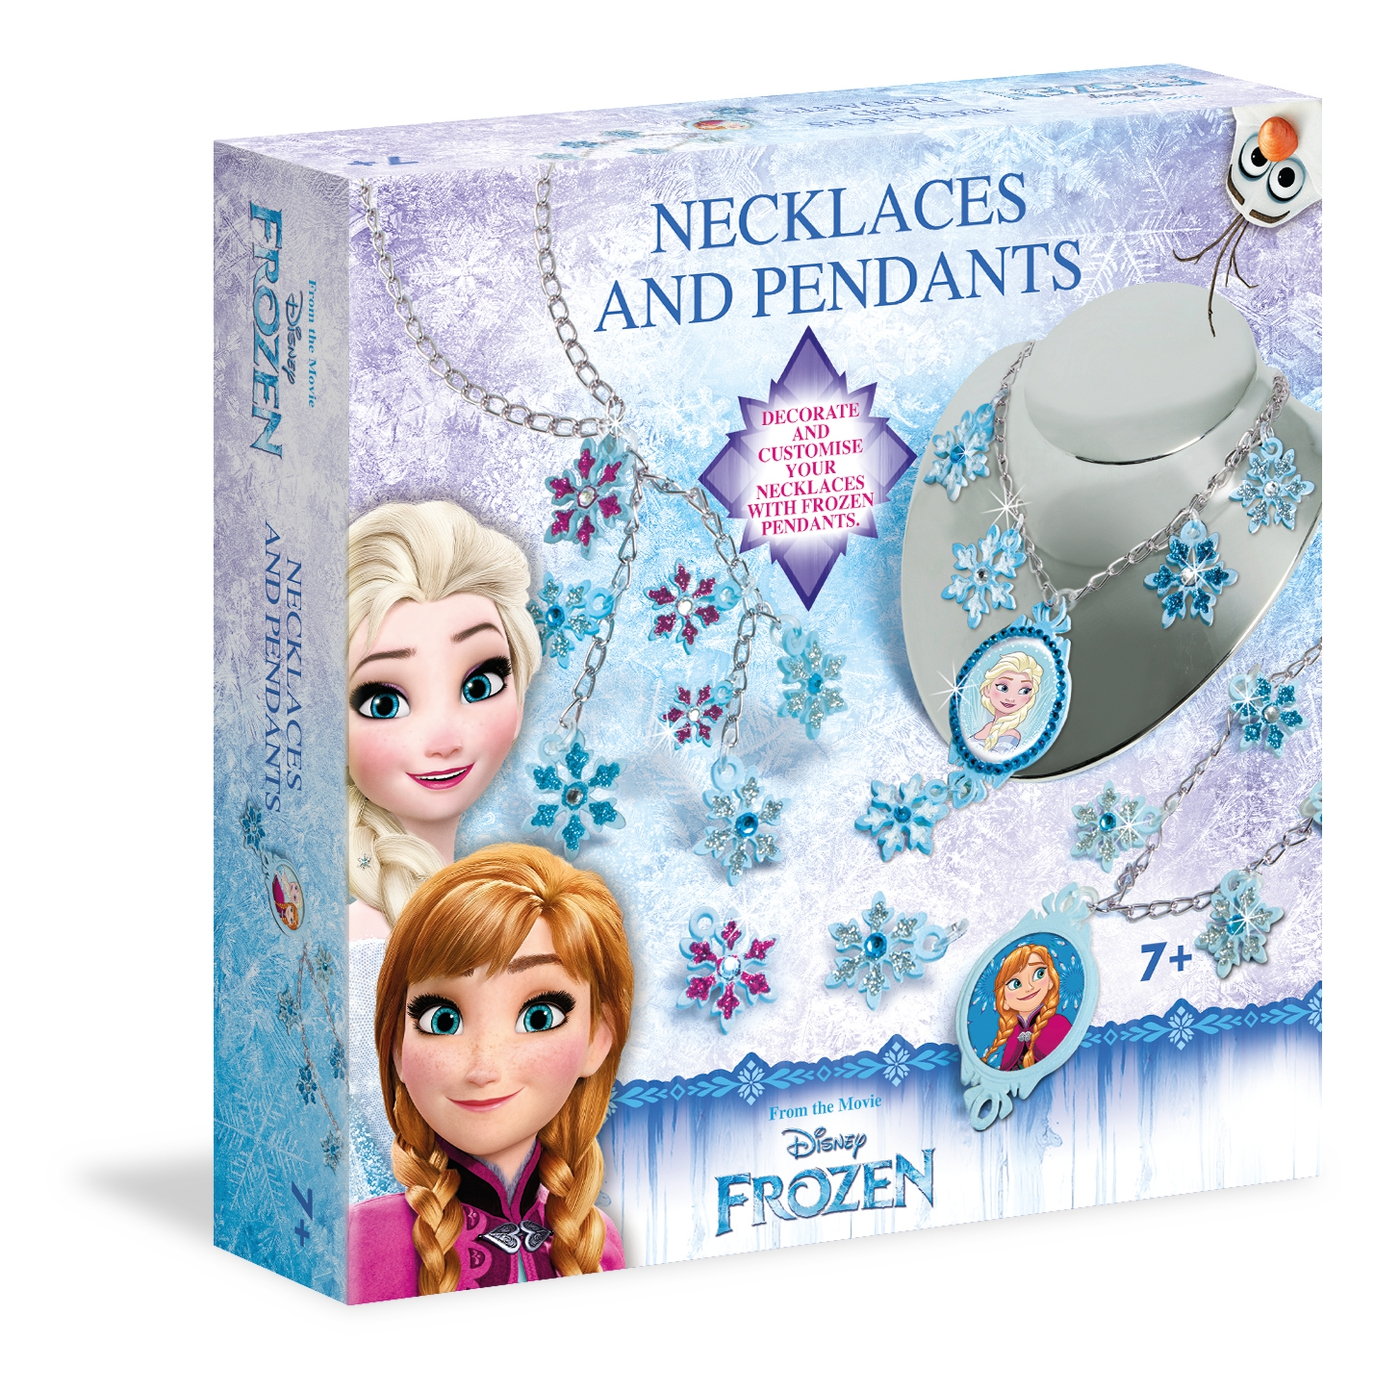 FROZEN 2 CHARMS 18516